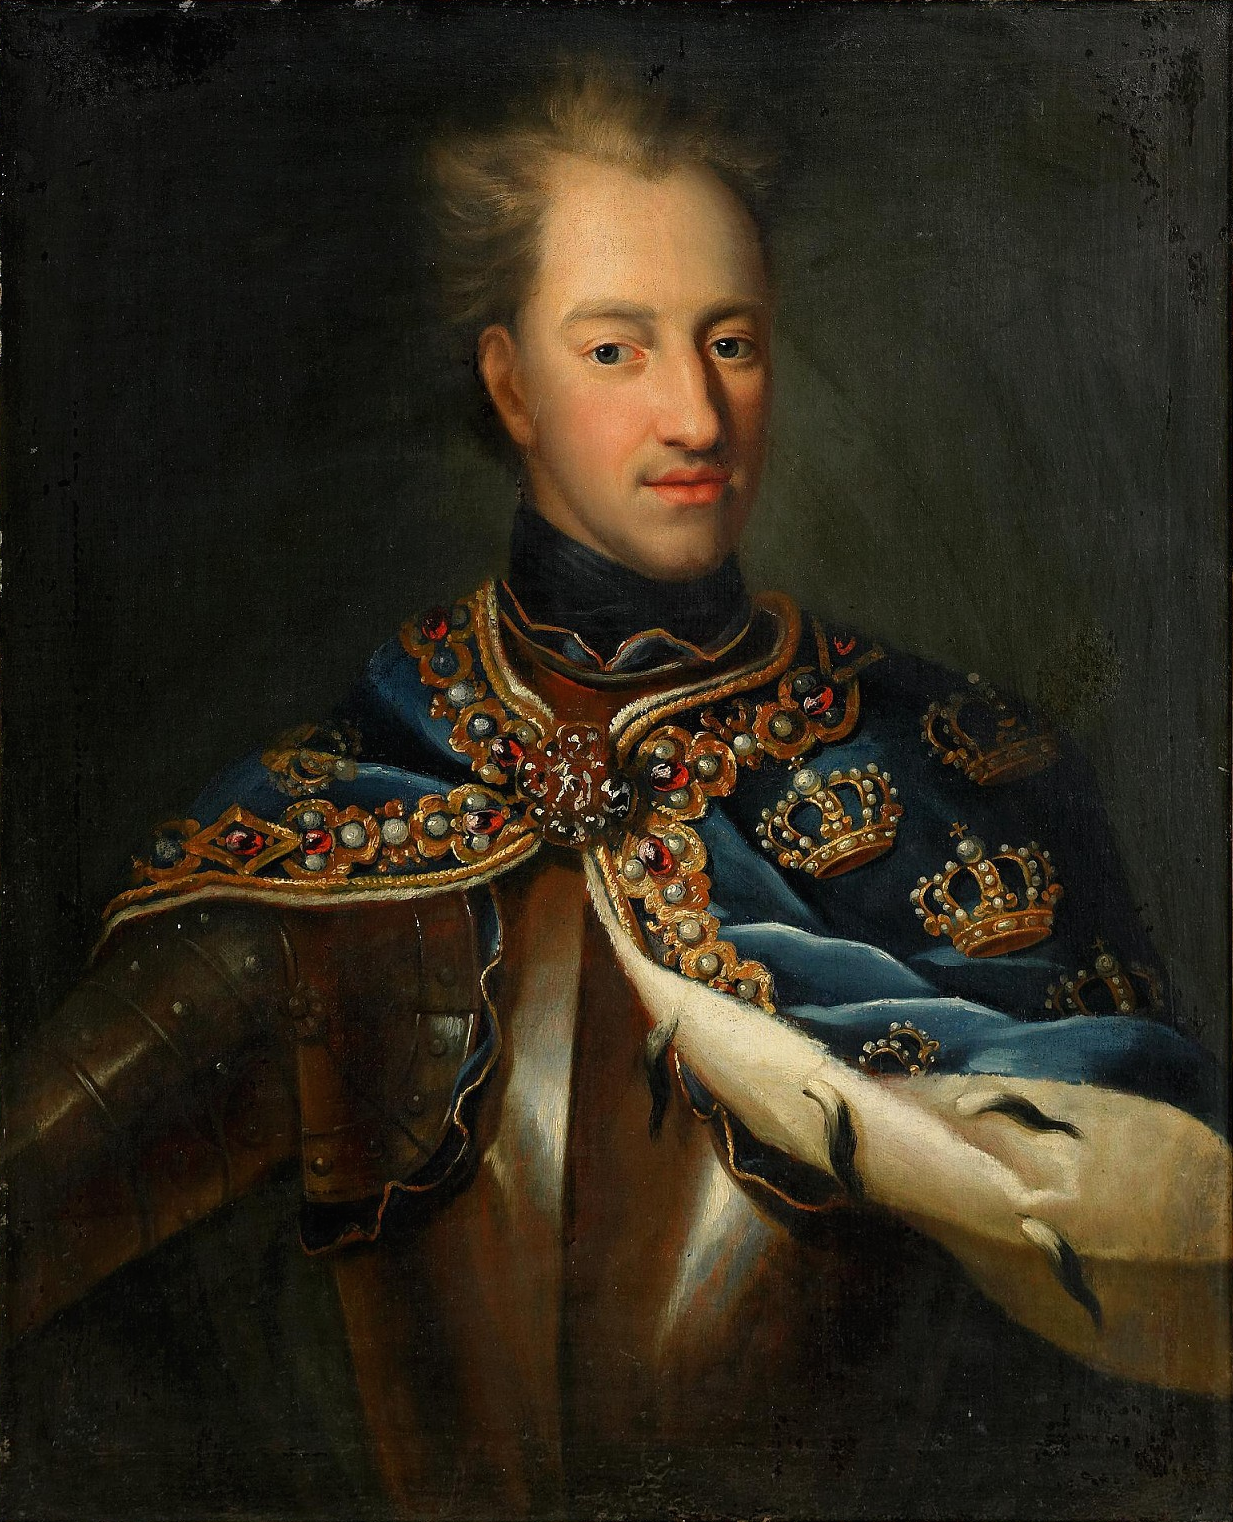 Karl Charles Xii of Sweden